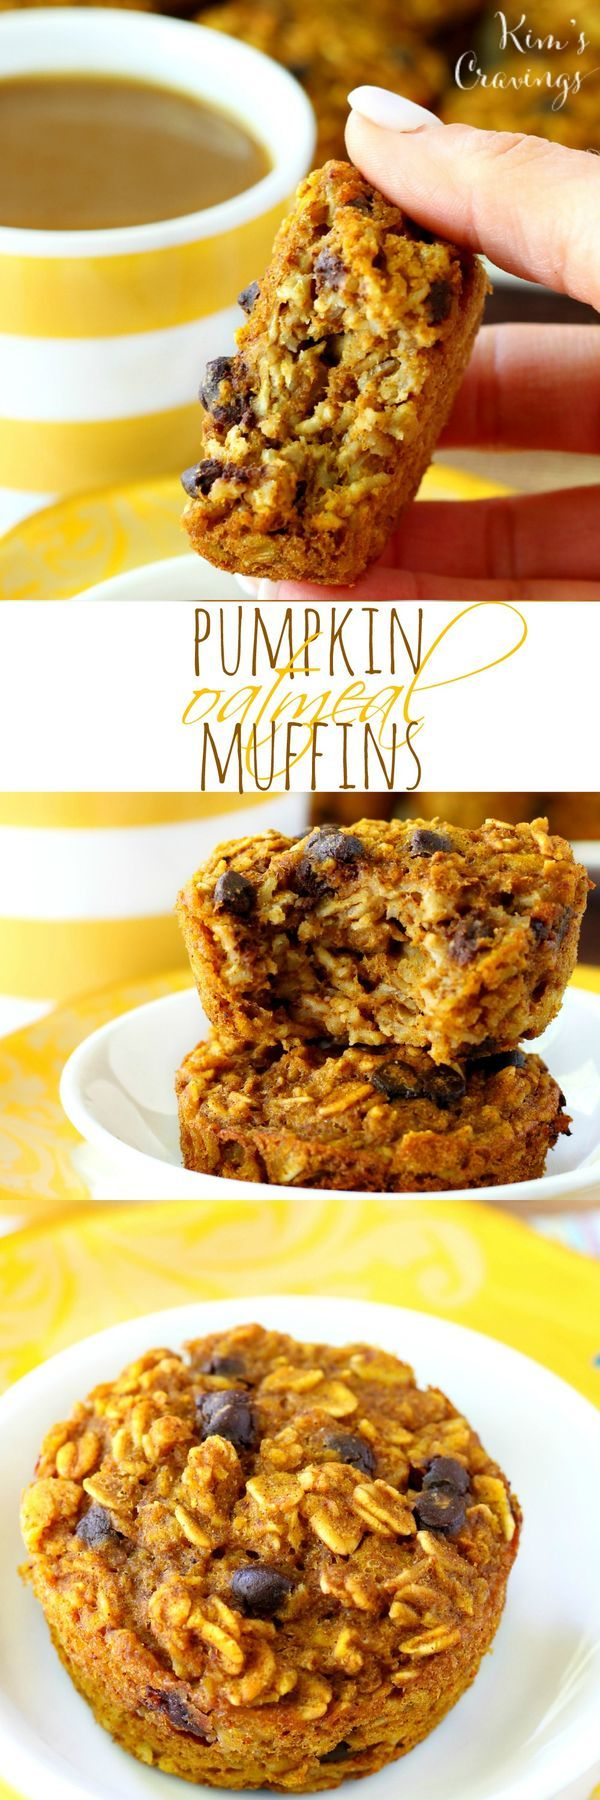 These Pumpkin Oatmeal Muffins are the perfect grab-n-go breakfast or snack with our favorite fall flavors! (low-calorie, healthy, non-dairy and gluten-free) (Vegan Bake Autumn)